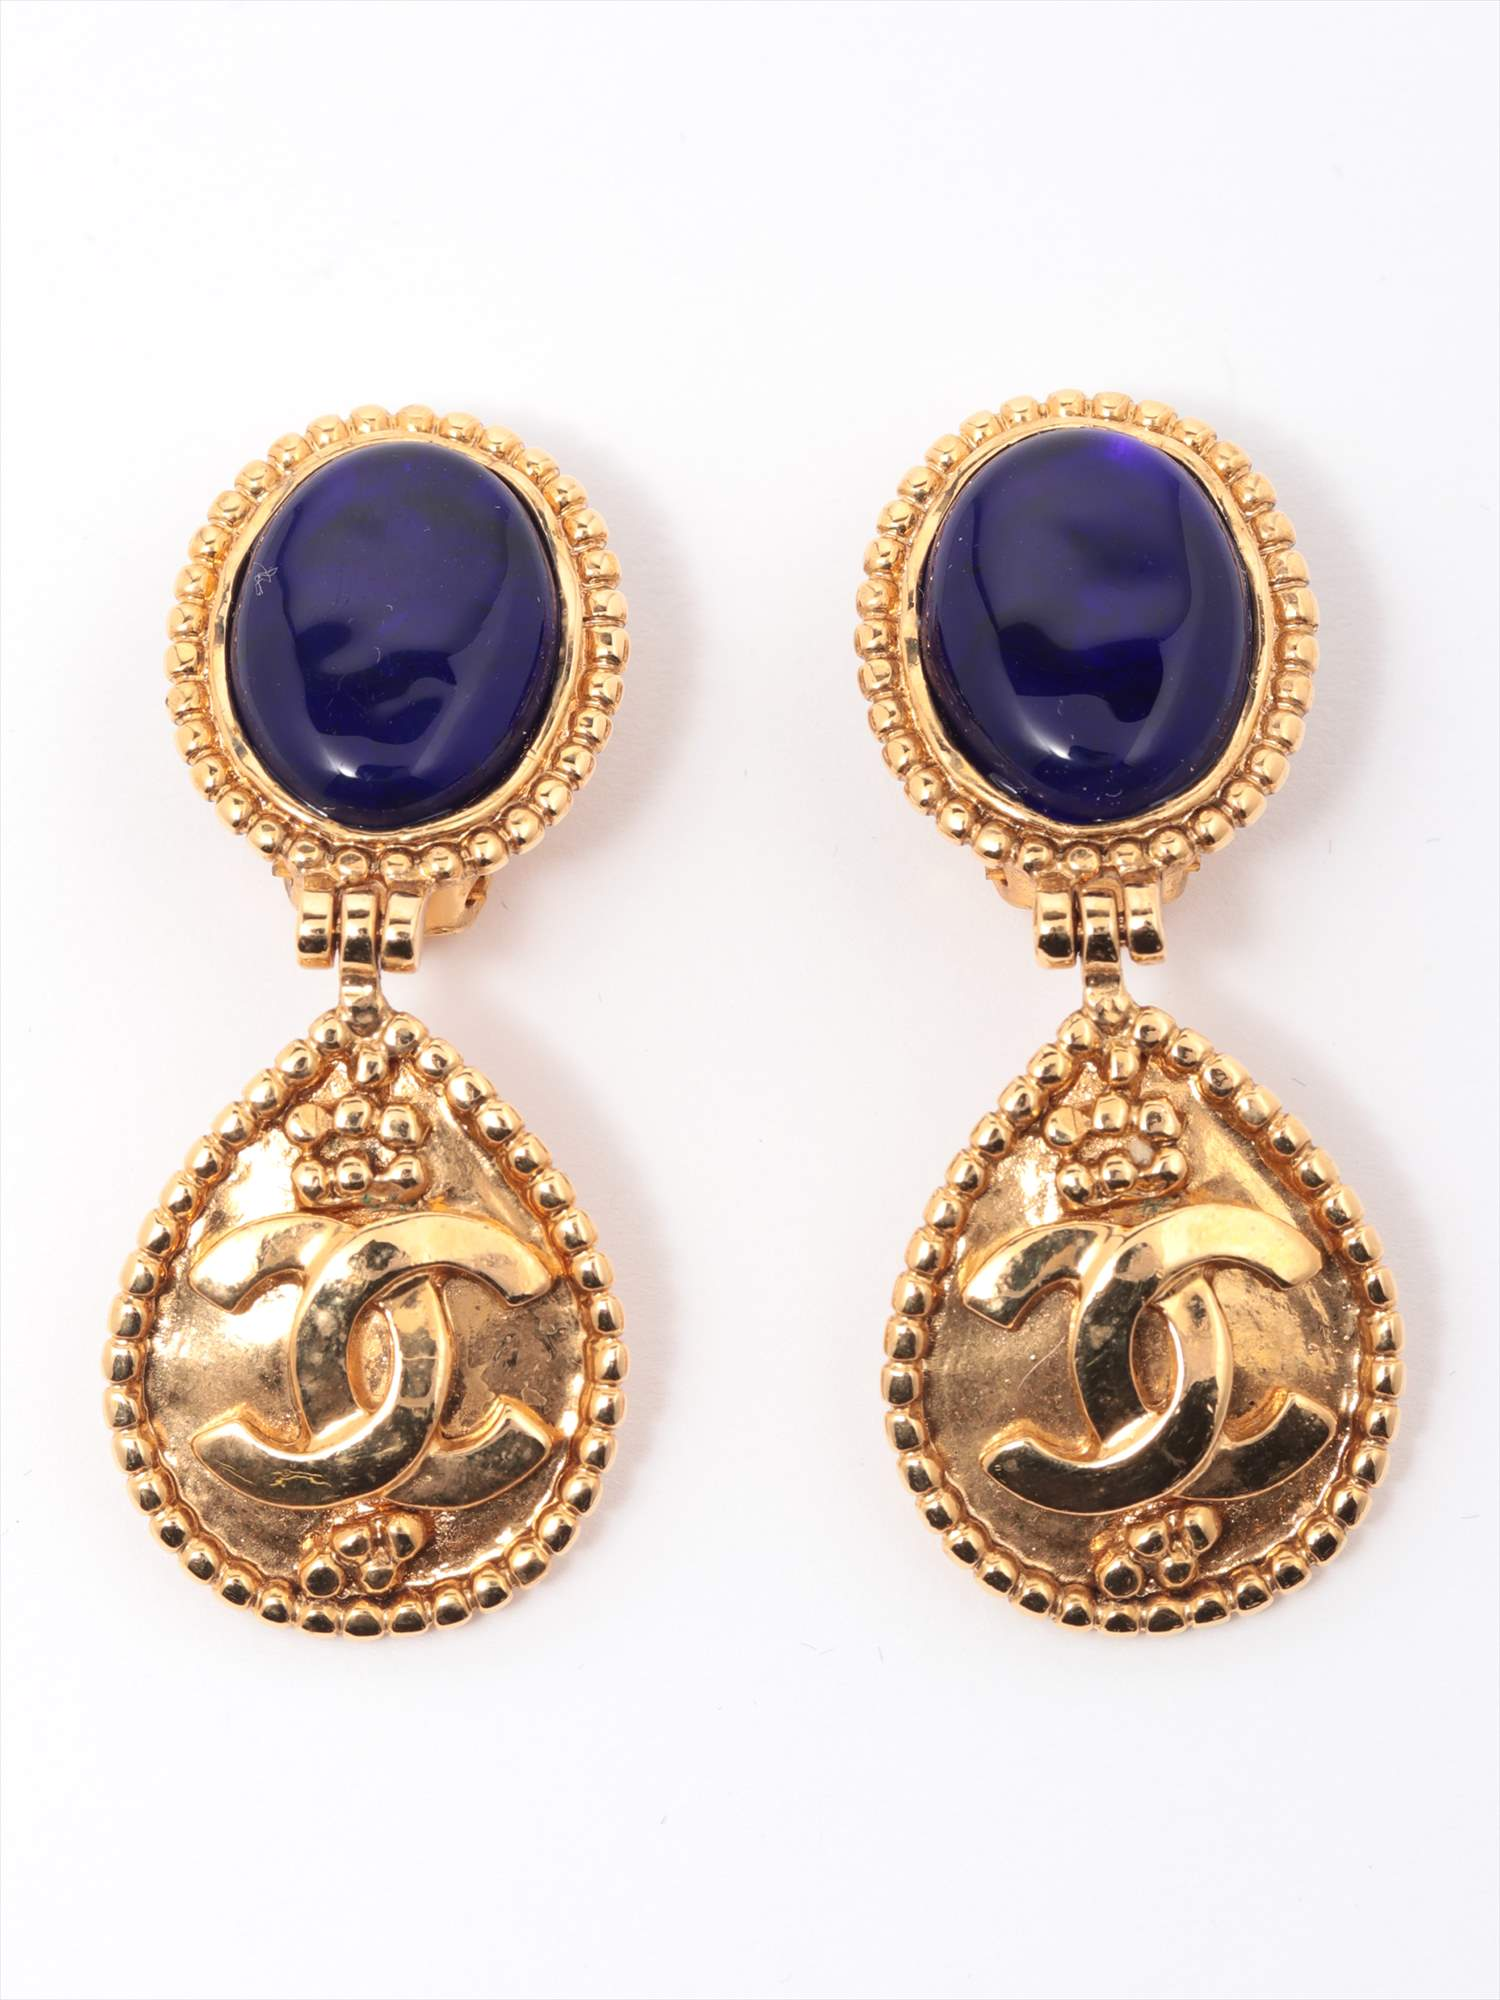 [Used goods] Chanel Coco mark earrings (for both ears) GP Blue Blue Stone 95A